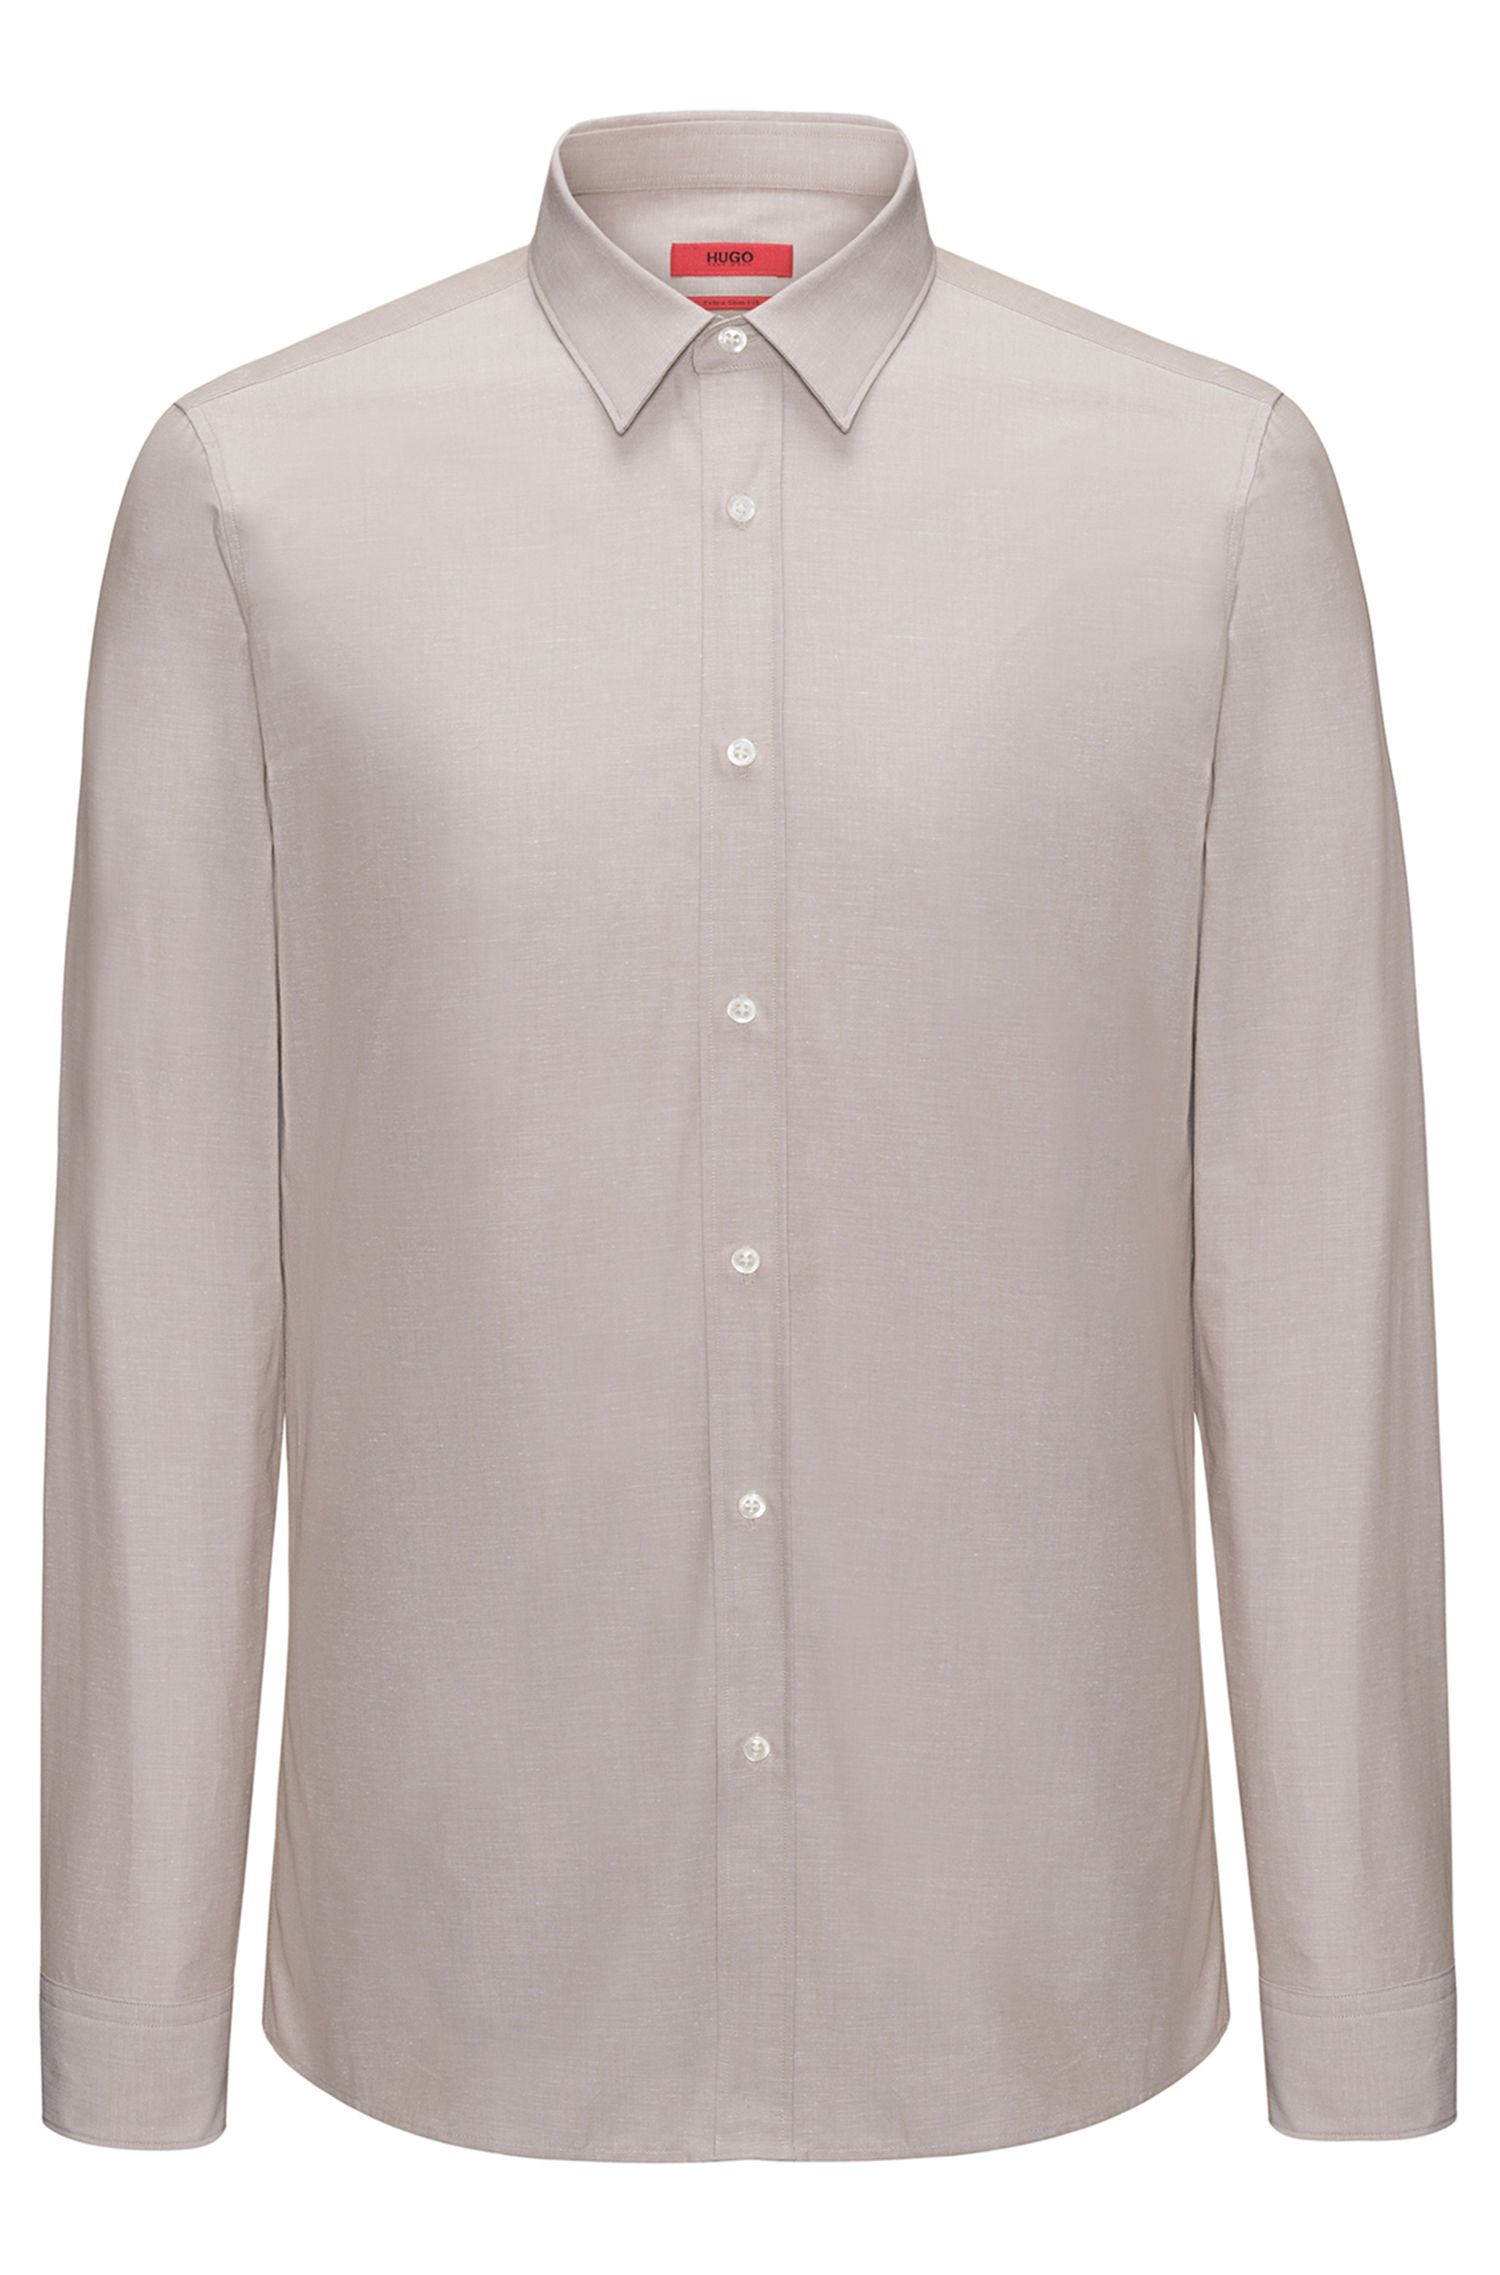 Extra-slim-fit shirt in a cotton blend